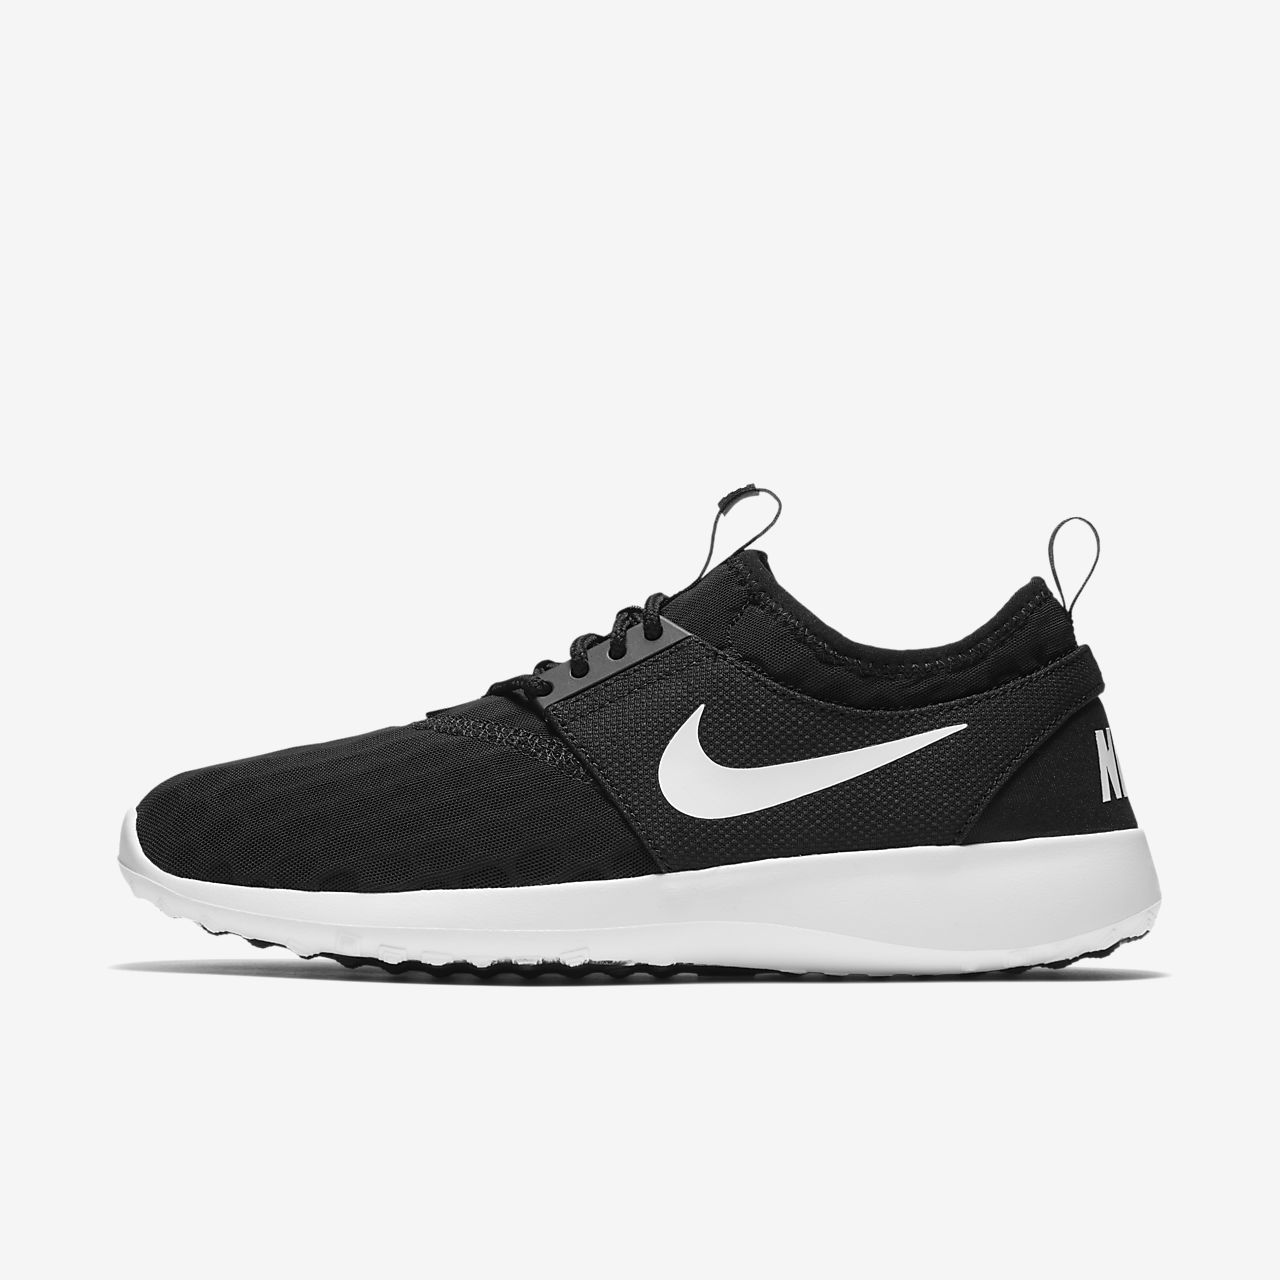 brand new 49edb 5e40c Low Resolution Nike Juvenate Women s Shoe Nike Juvenate Women s Shoe